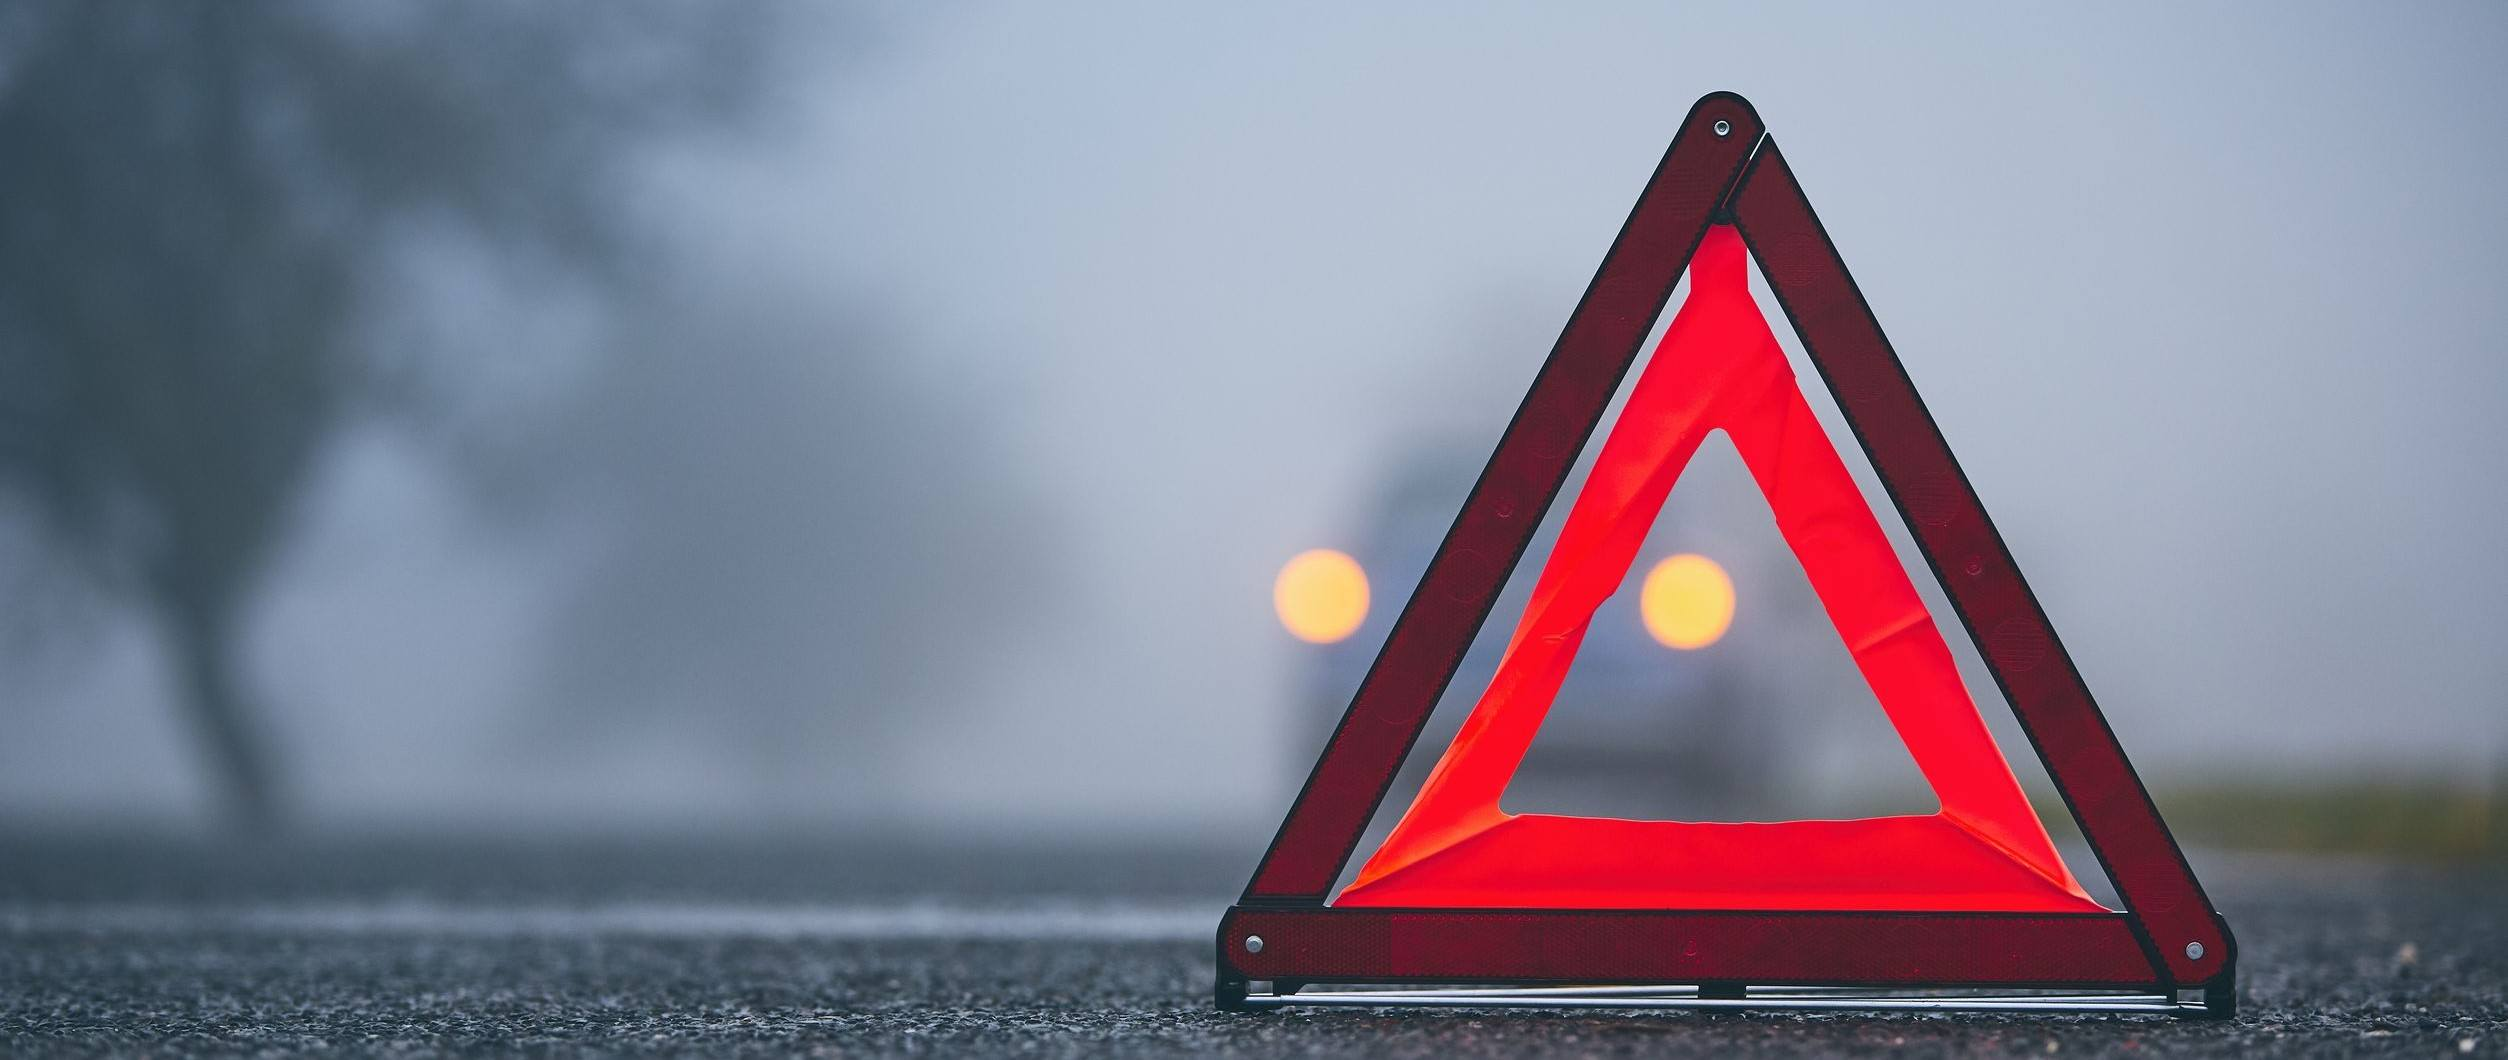 A Warning Triangle on a road with a car in the background.